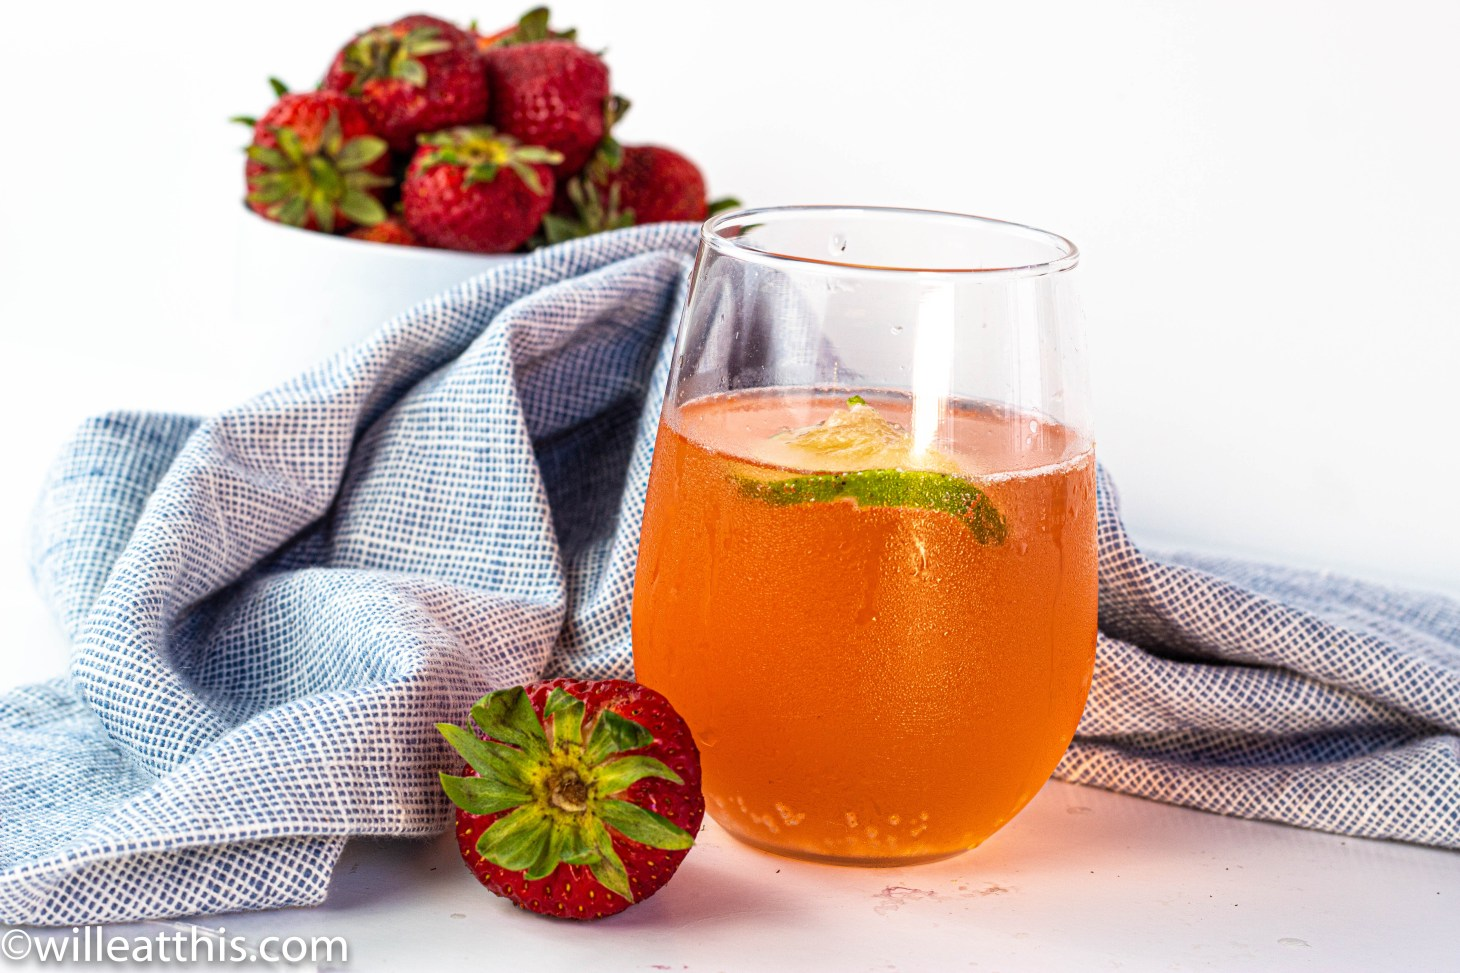 A glass cup with sparkling strawberry and rhubarb drink. There is a folded blue napkin and strawberries in the background.